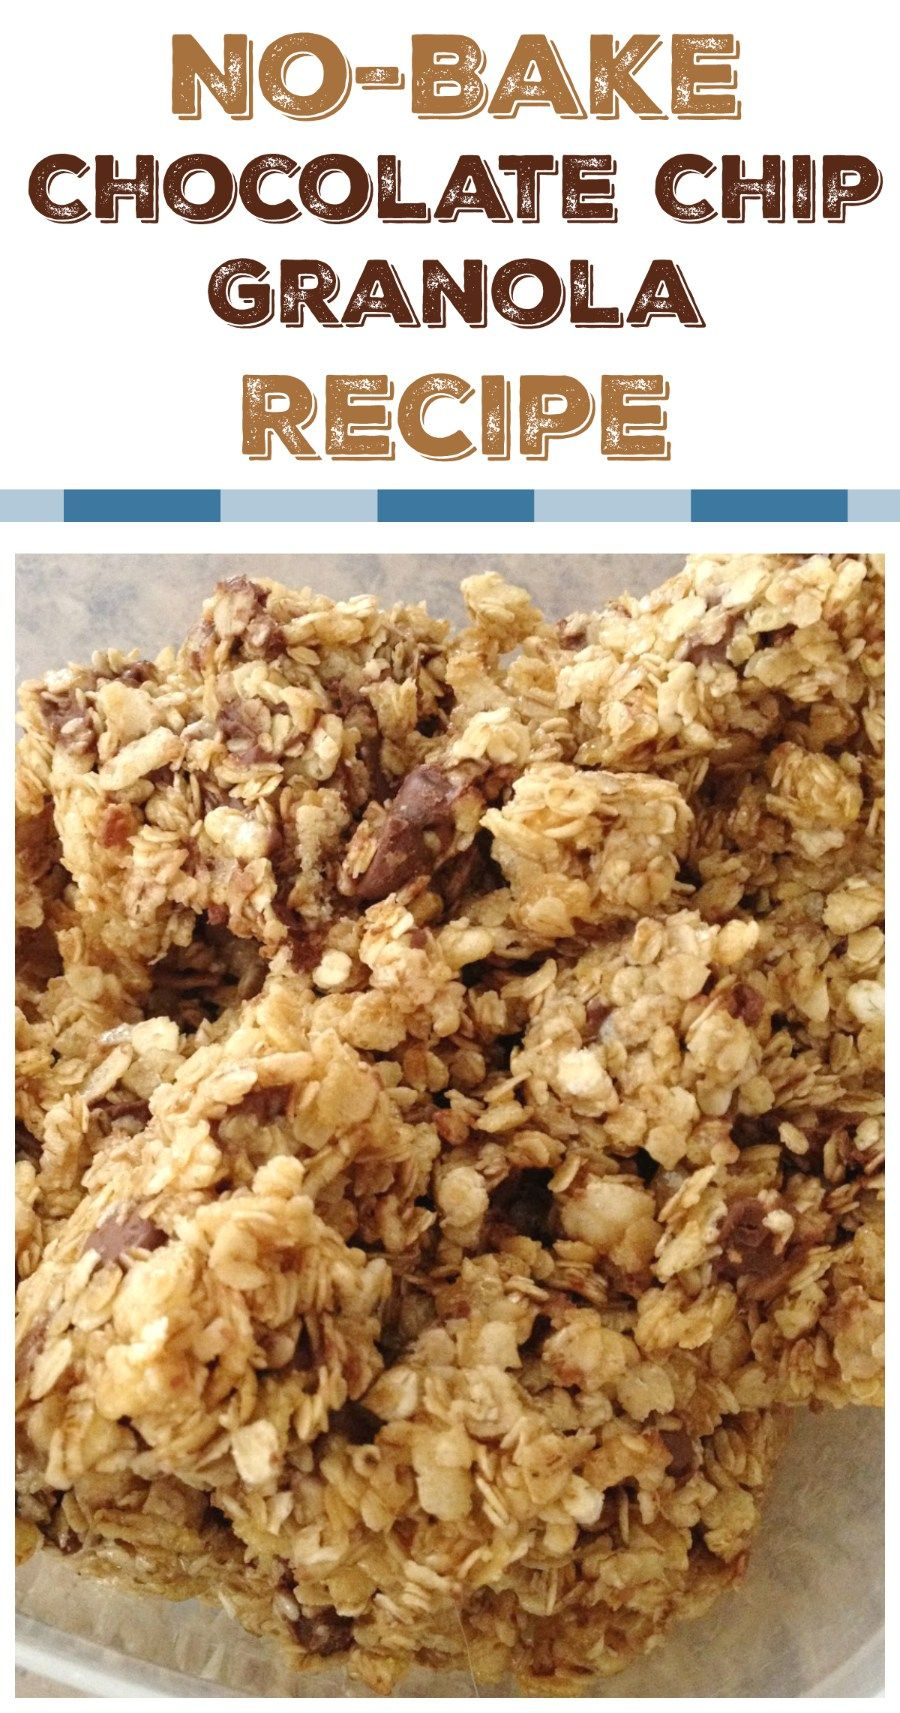 No Bake Chocolate Chip Granola Recipe | Chocolate chip ...